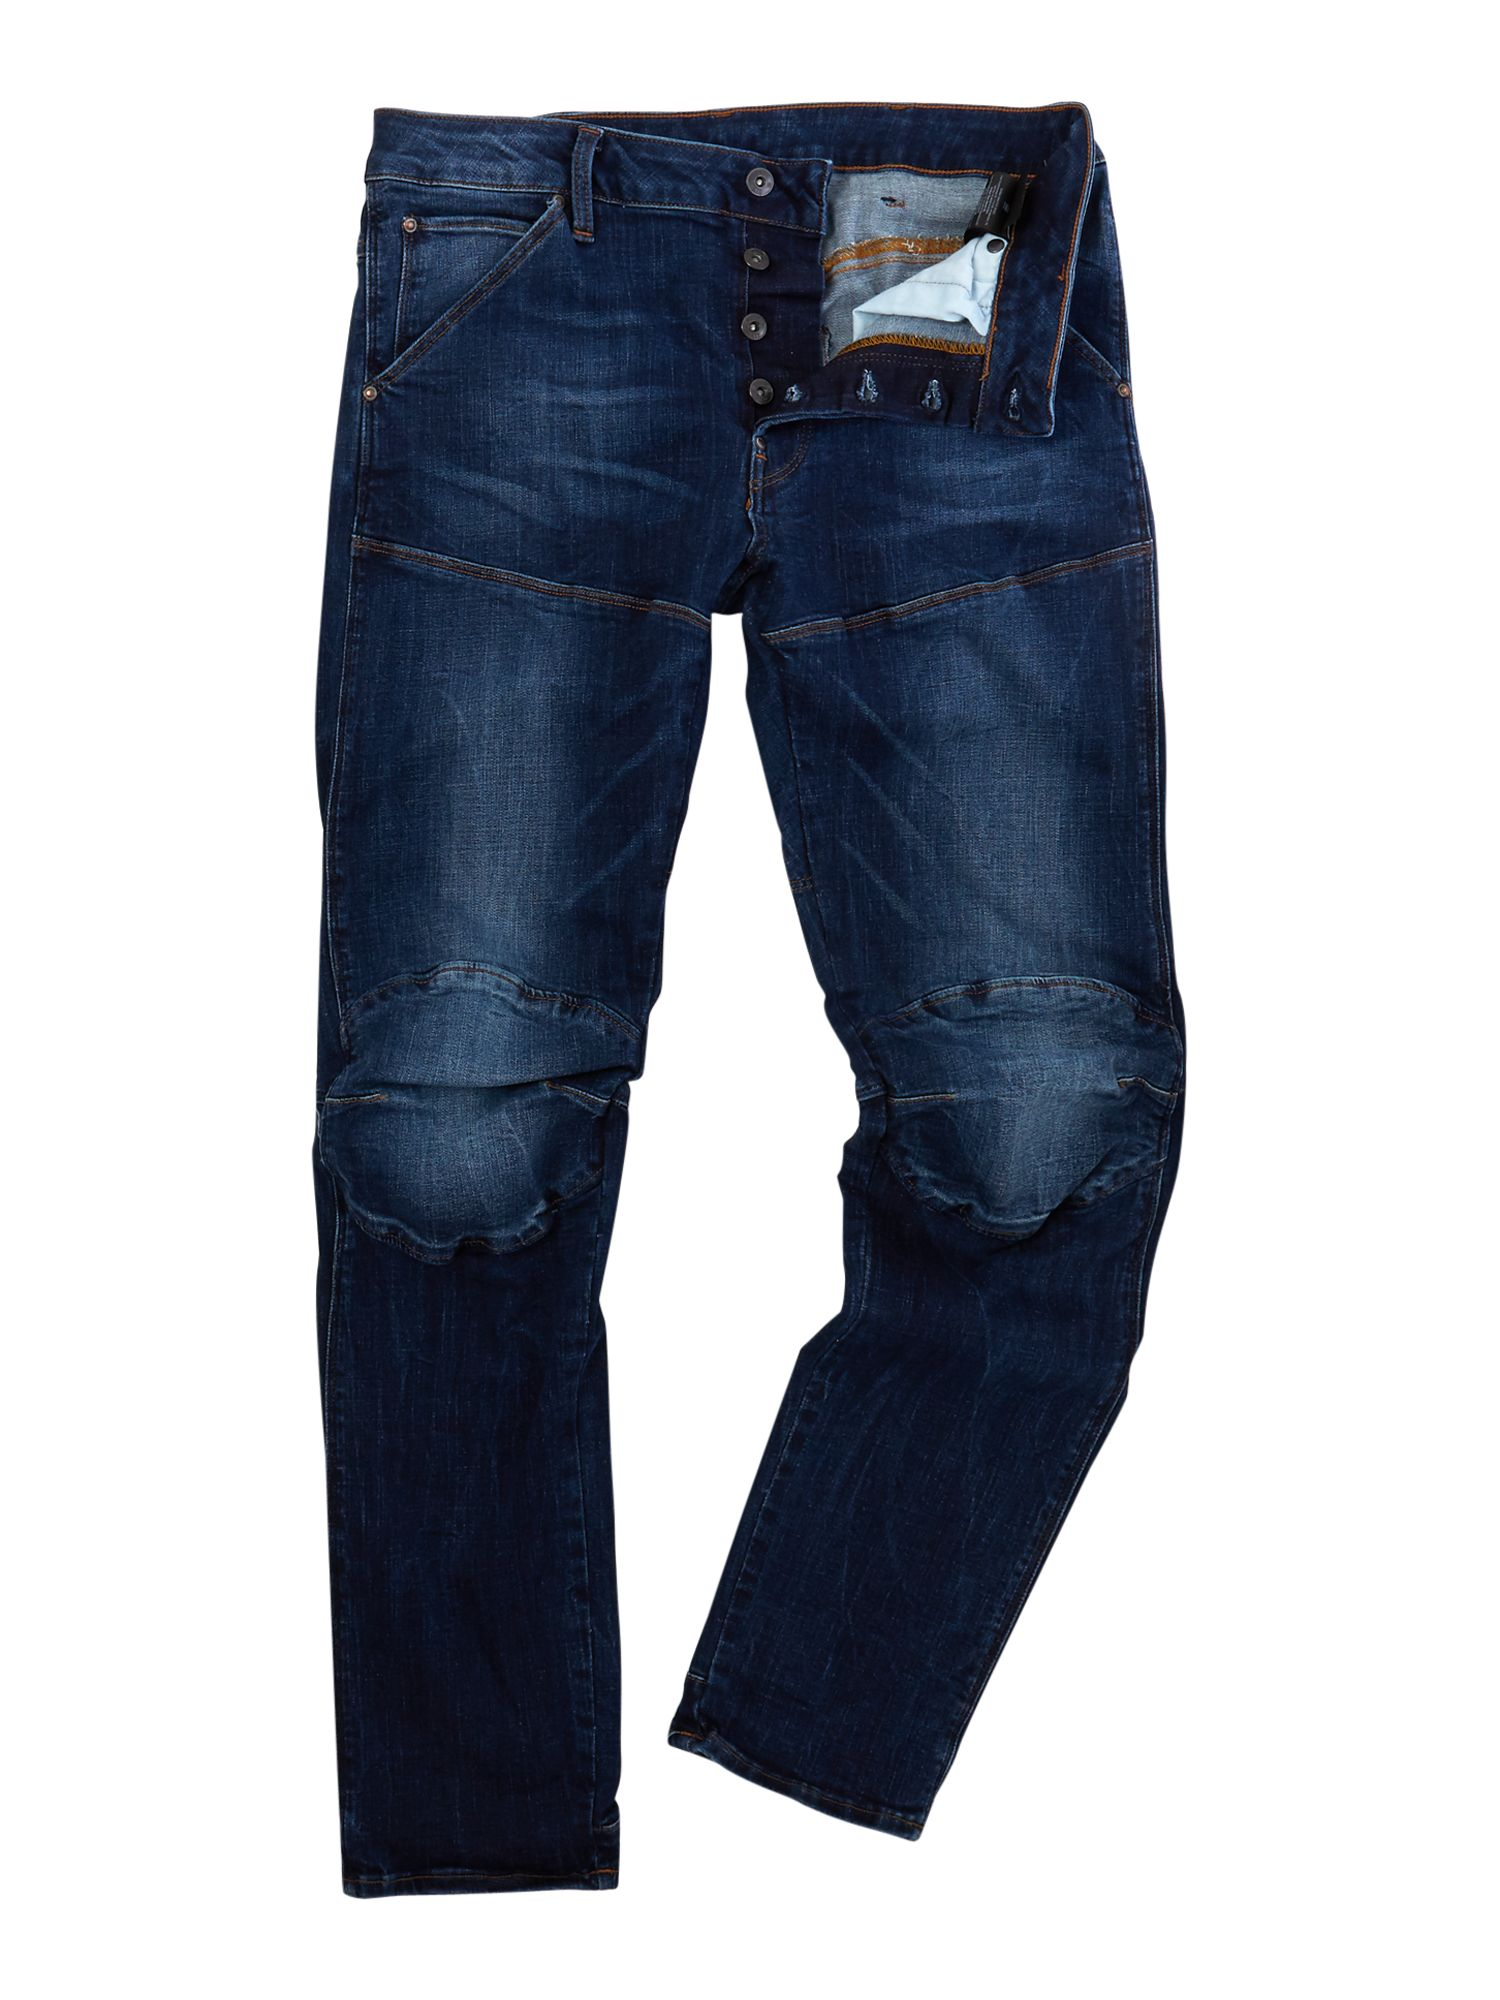 Mens G-star 5620 3d Slim Trender Ultimate Stretch Jeans, Denim Mid Wash